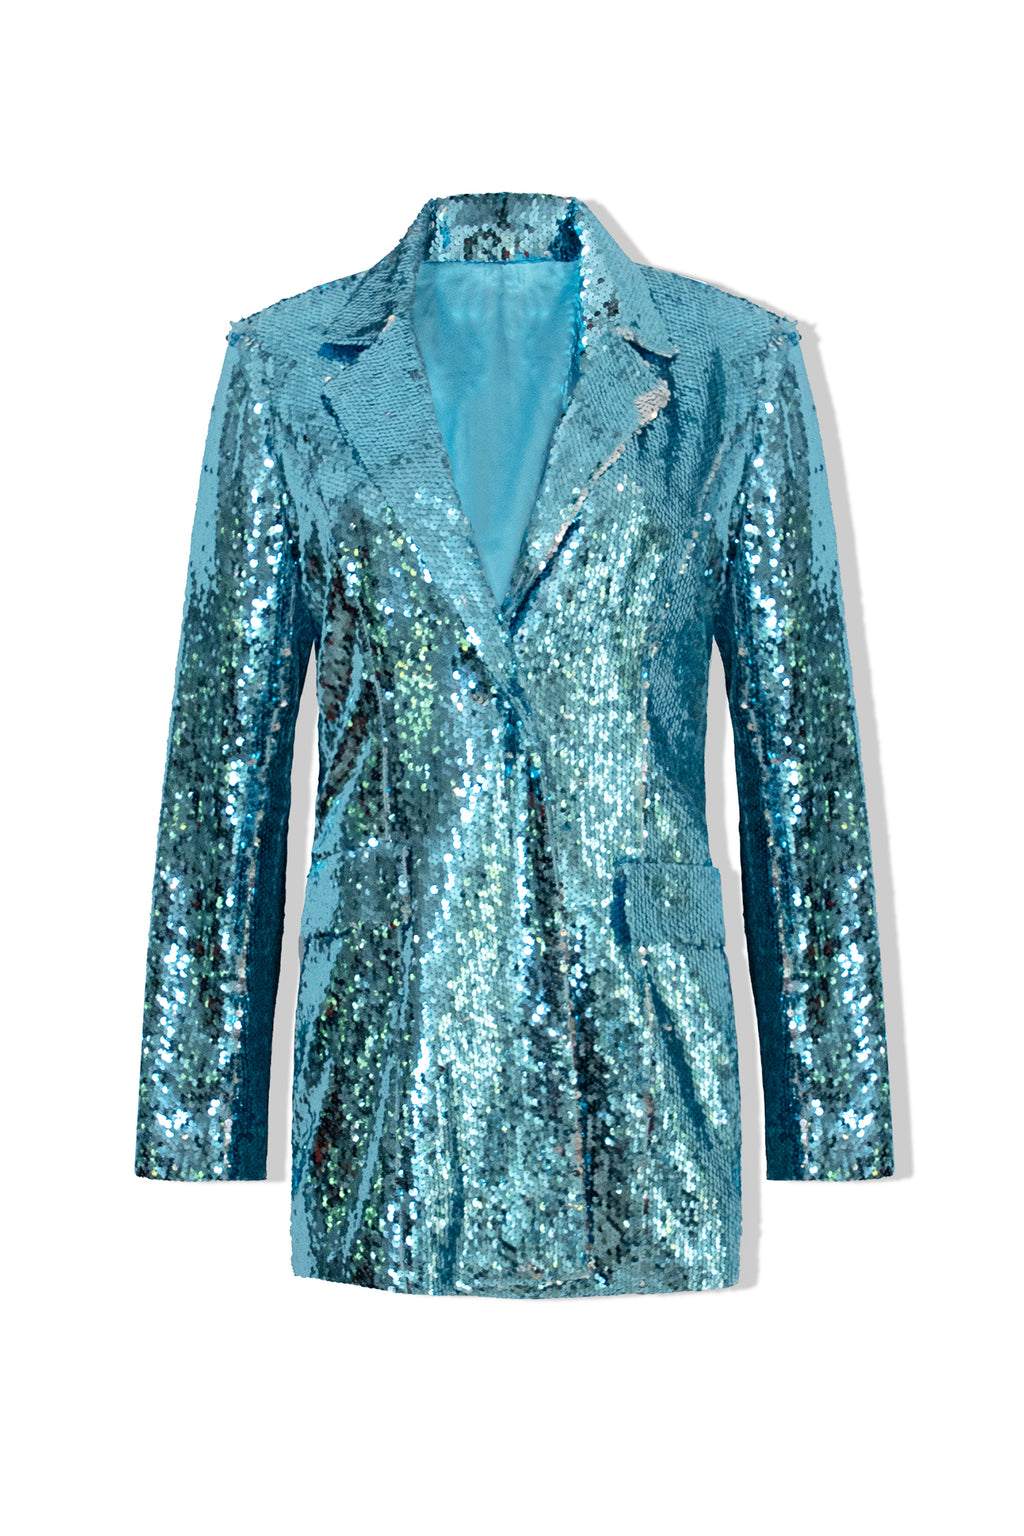 Ilona Rich Blue & Silver Sequin Single Breasted Blazer